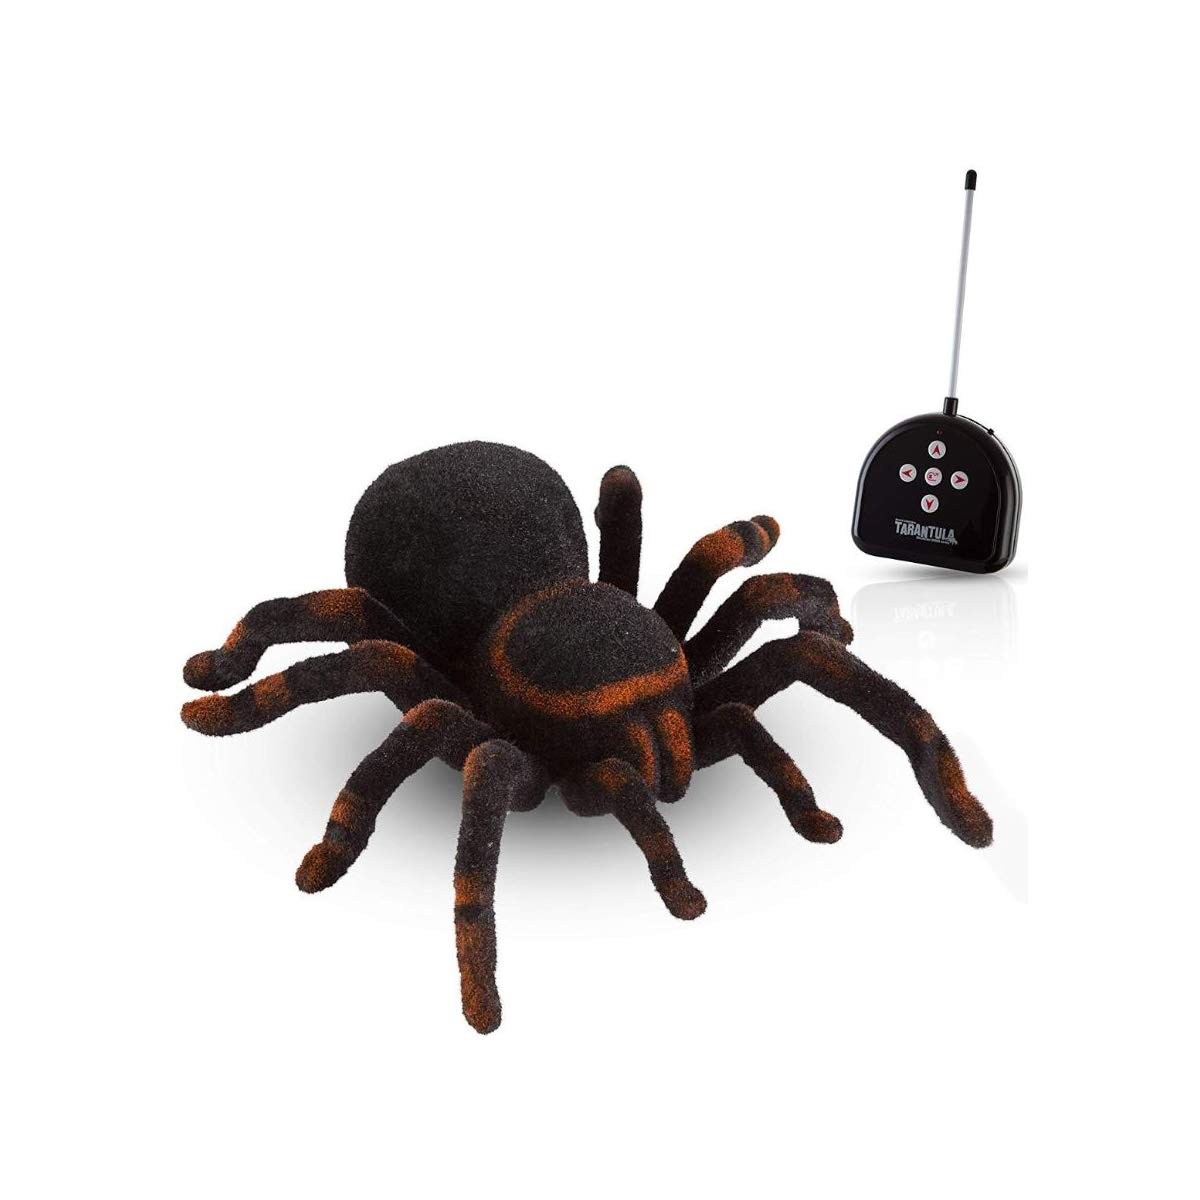 Cute Sunlight Wireless Remote Control Spider Toy Realistic 8 Inch Tarantula Animal Figures Funny Prank Joke Scare Gag Gifts for Halloween Christmas Party Decor Birthdays Holidays April Fool Pranks by Cute Sunlight